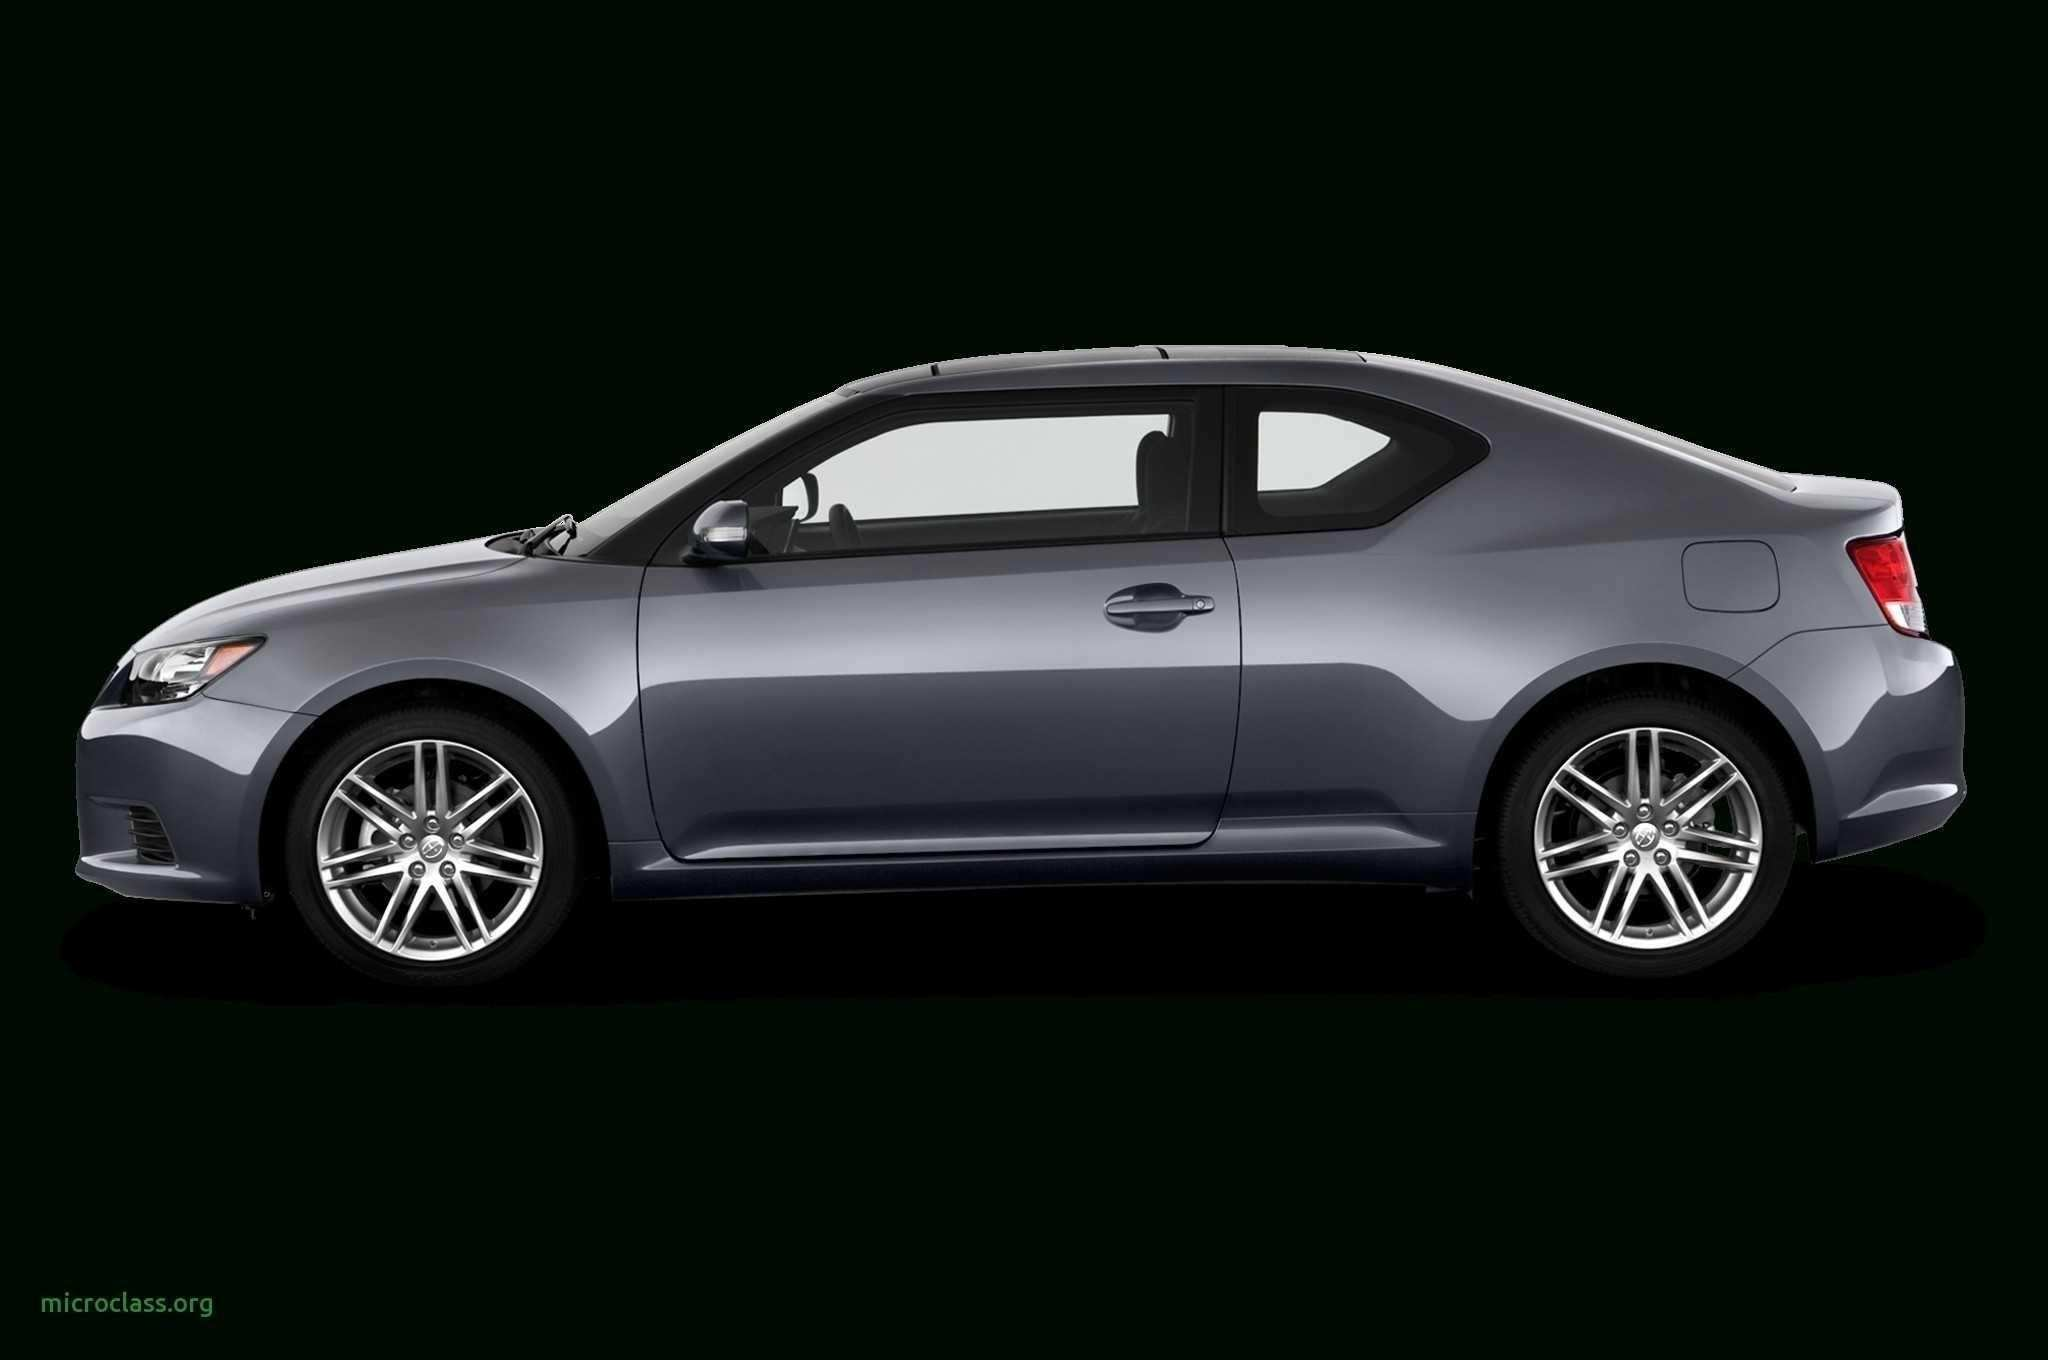 63 Best Review 2019 Scion Tced Configurations with 2019 Scion Tced